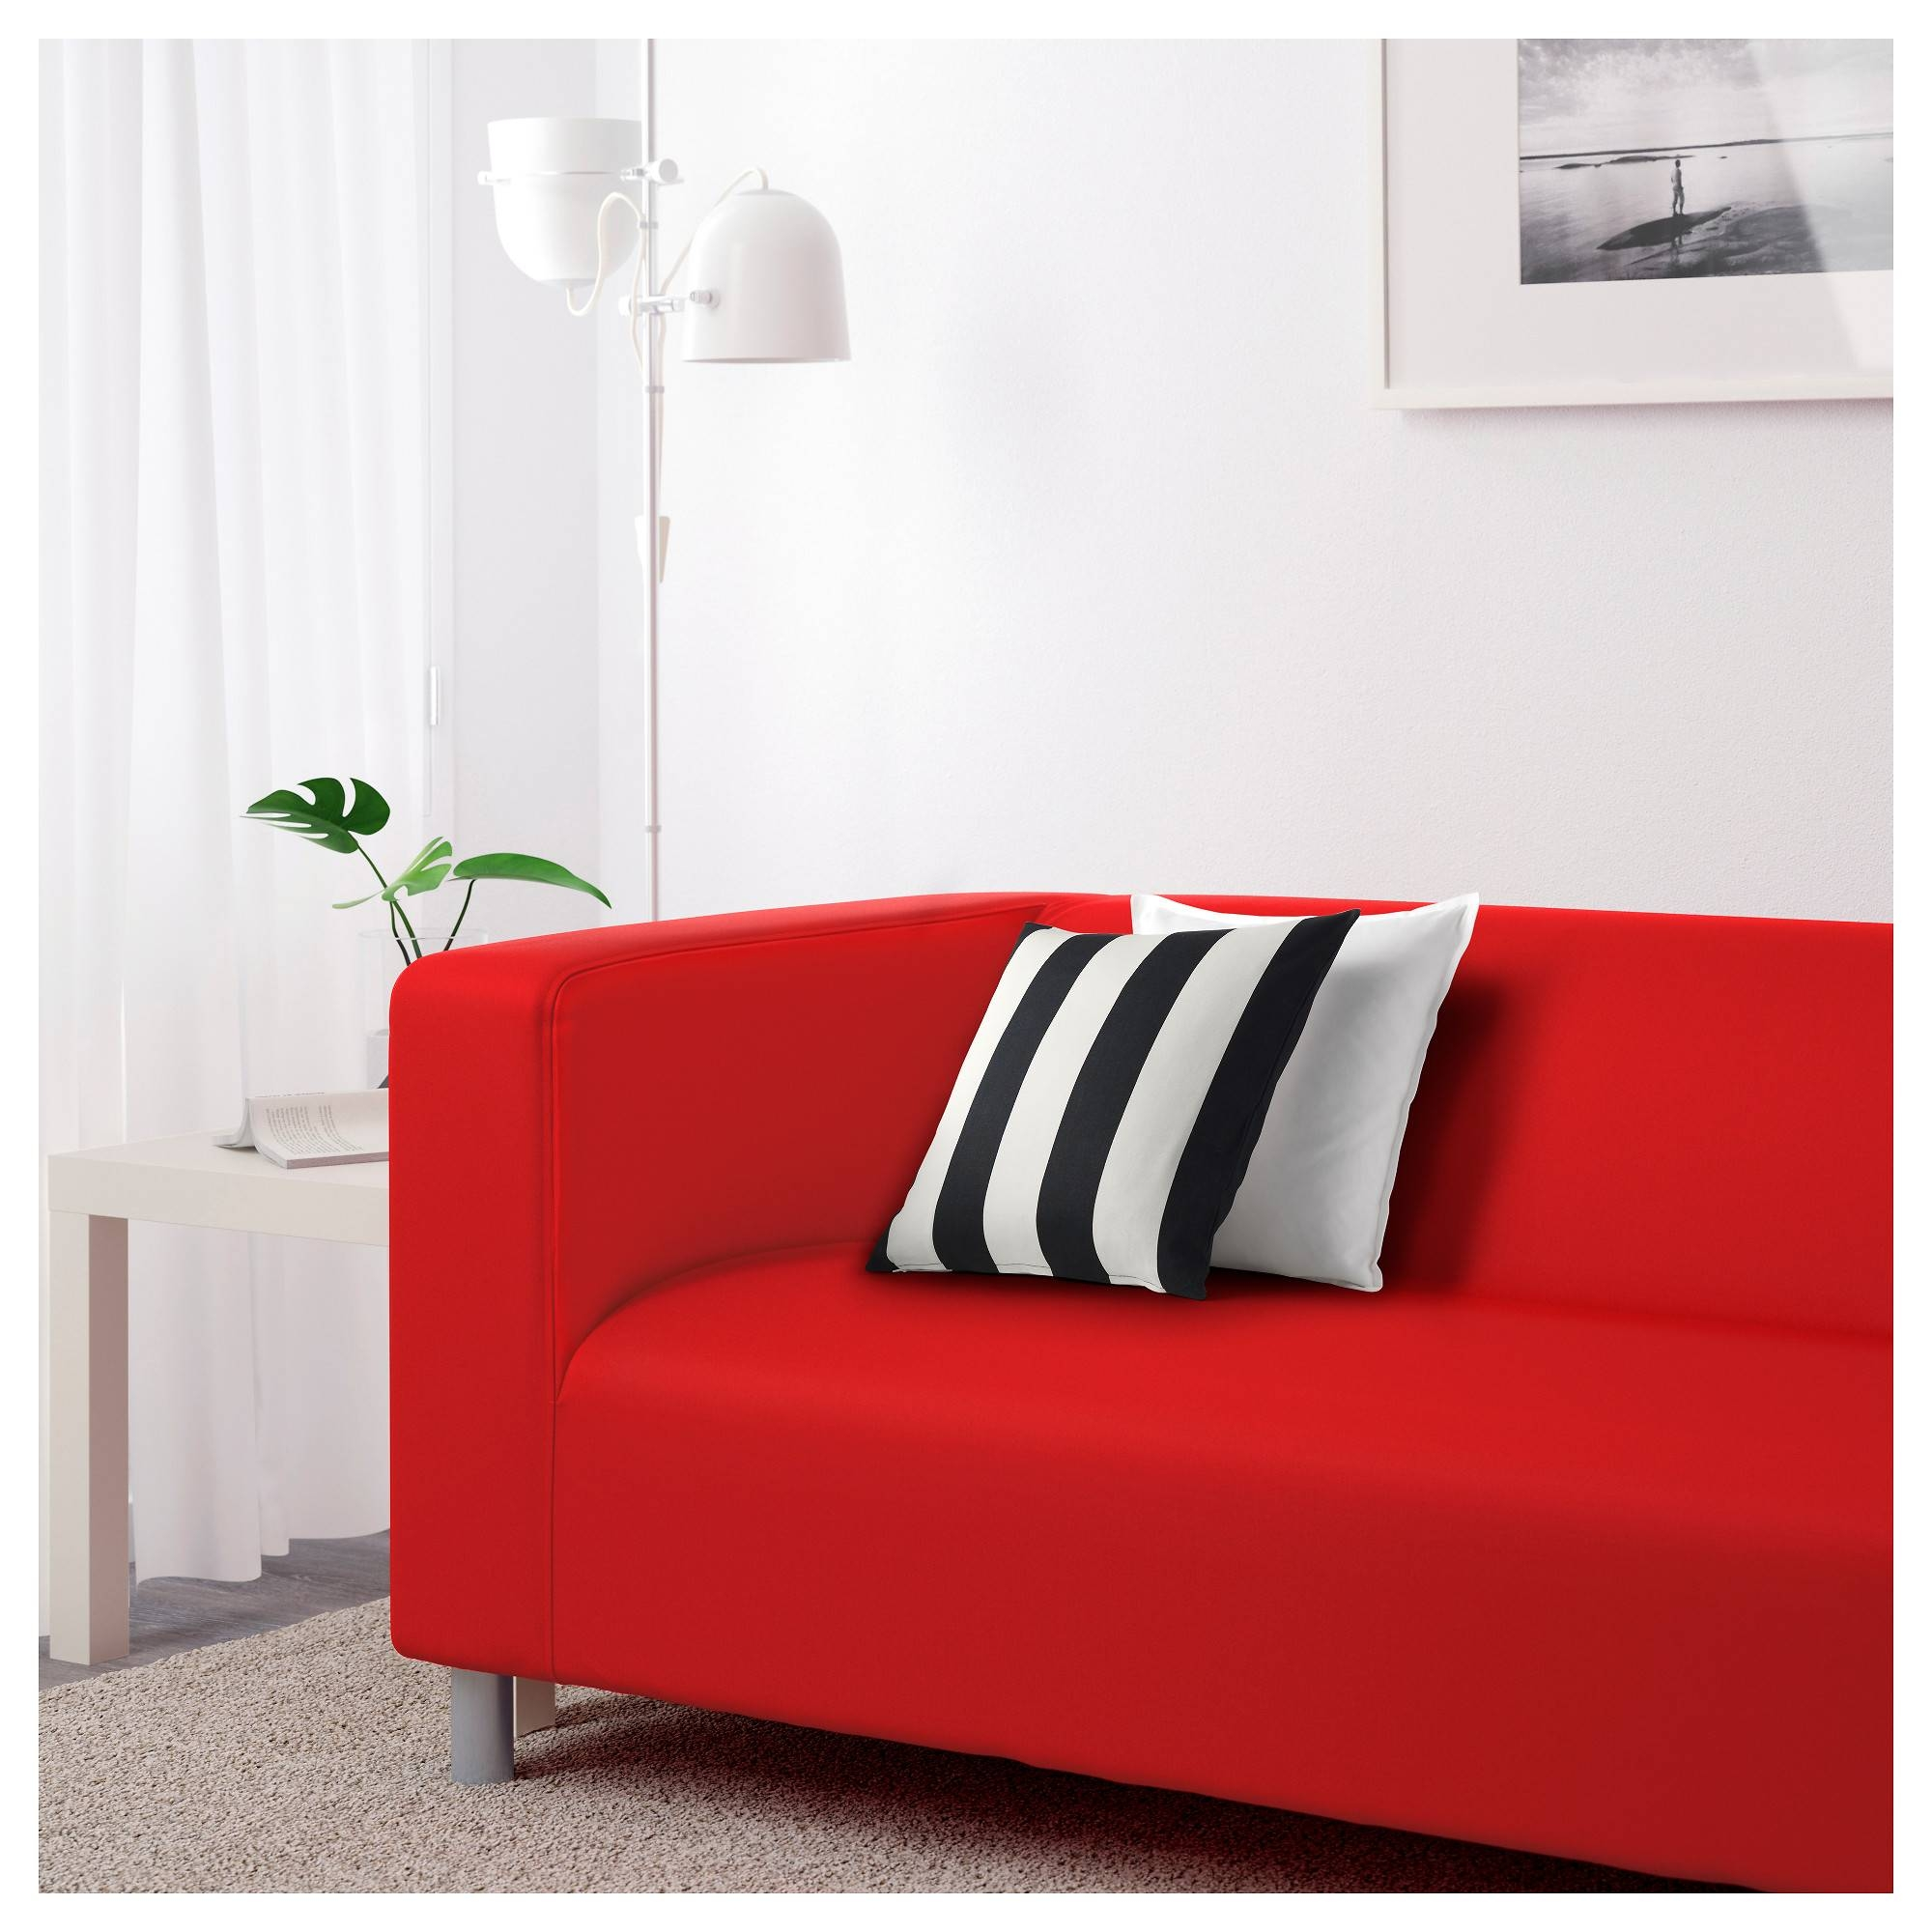 Klippan Two-Seat Sofa Flackarp Red-Orange - Ikea throughout Orange Ikea Sofas (Image 17 of 30)